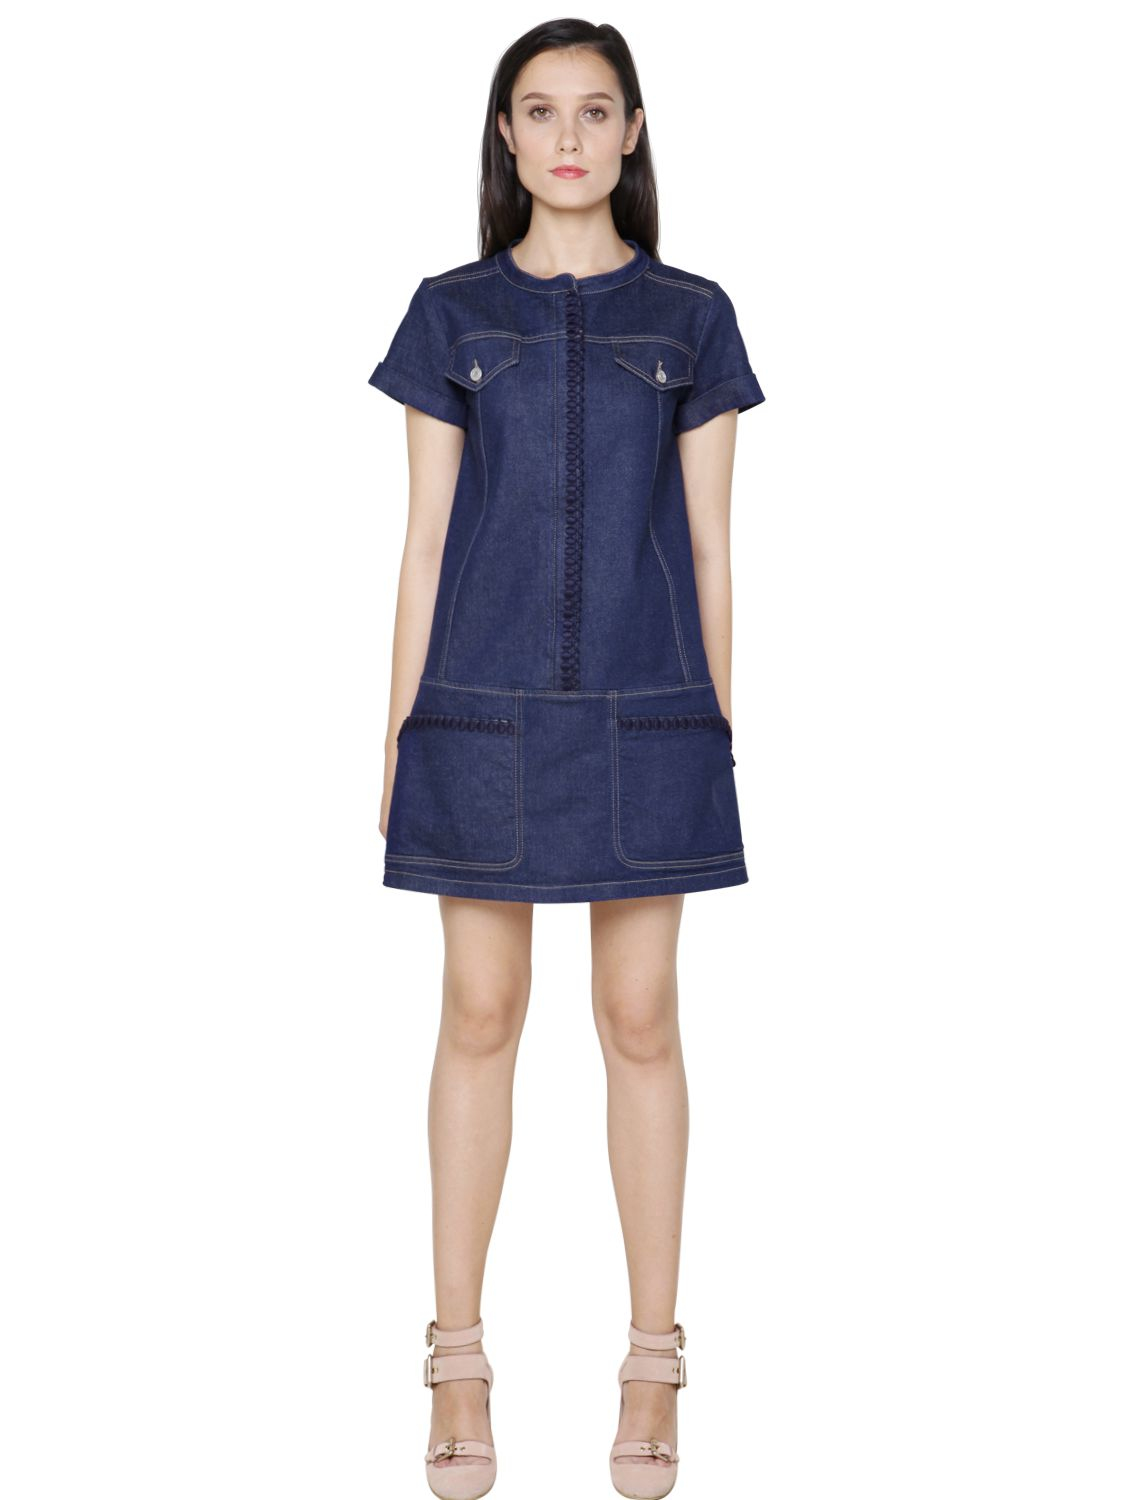 Lyst see by chloé embroidered cotton denim dress in blue